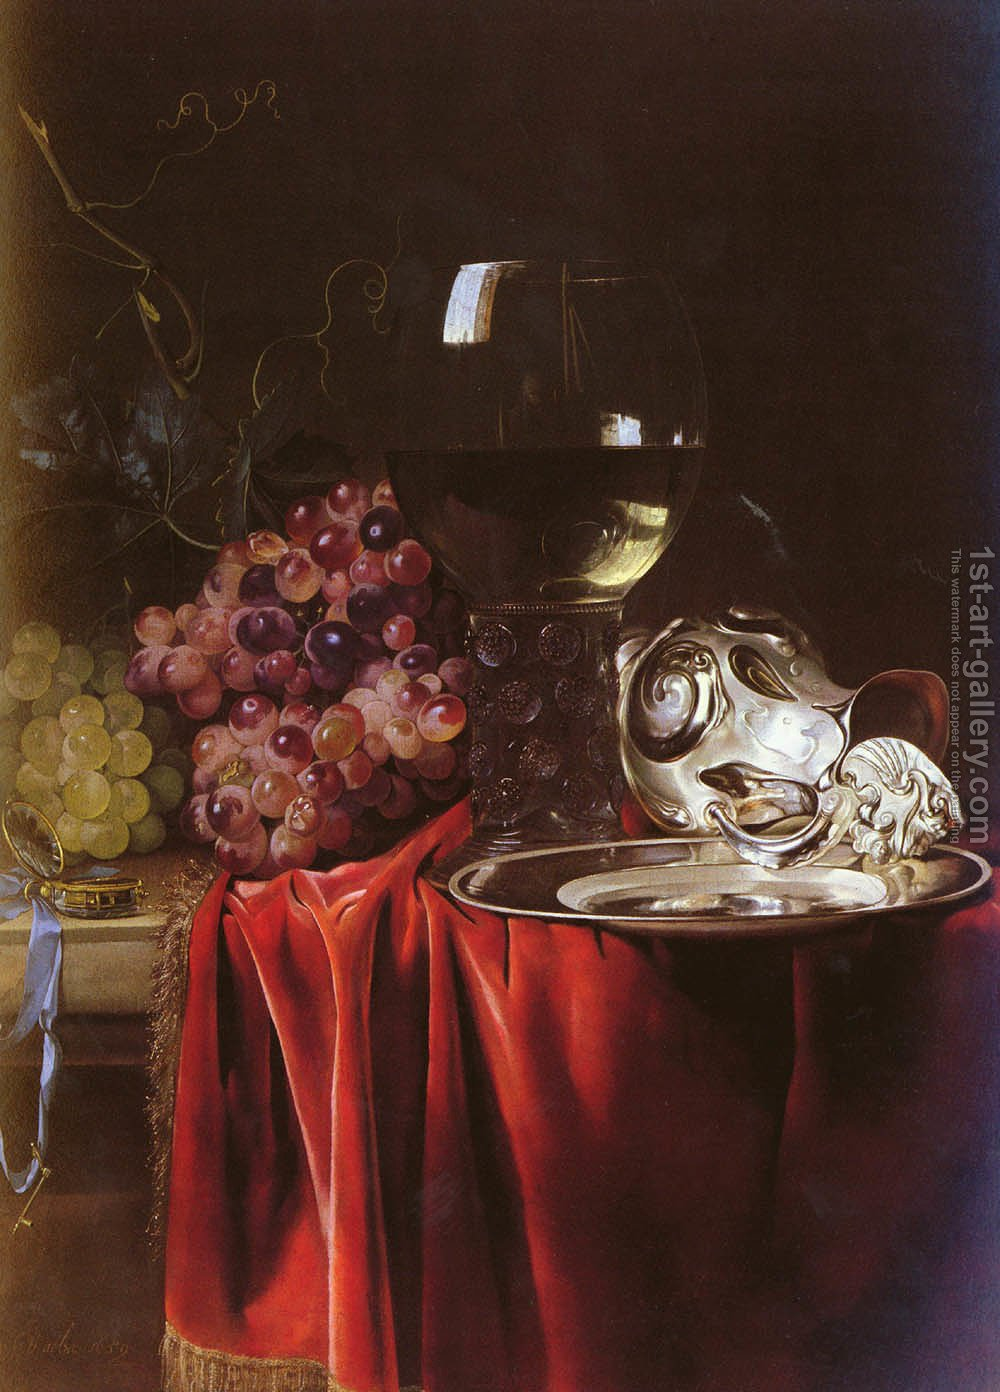 Huge version of A Still Life of Grapes, a Roemer, a Silver Ewer and a Plate